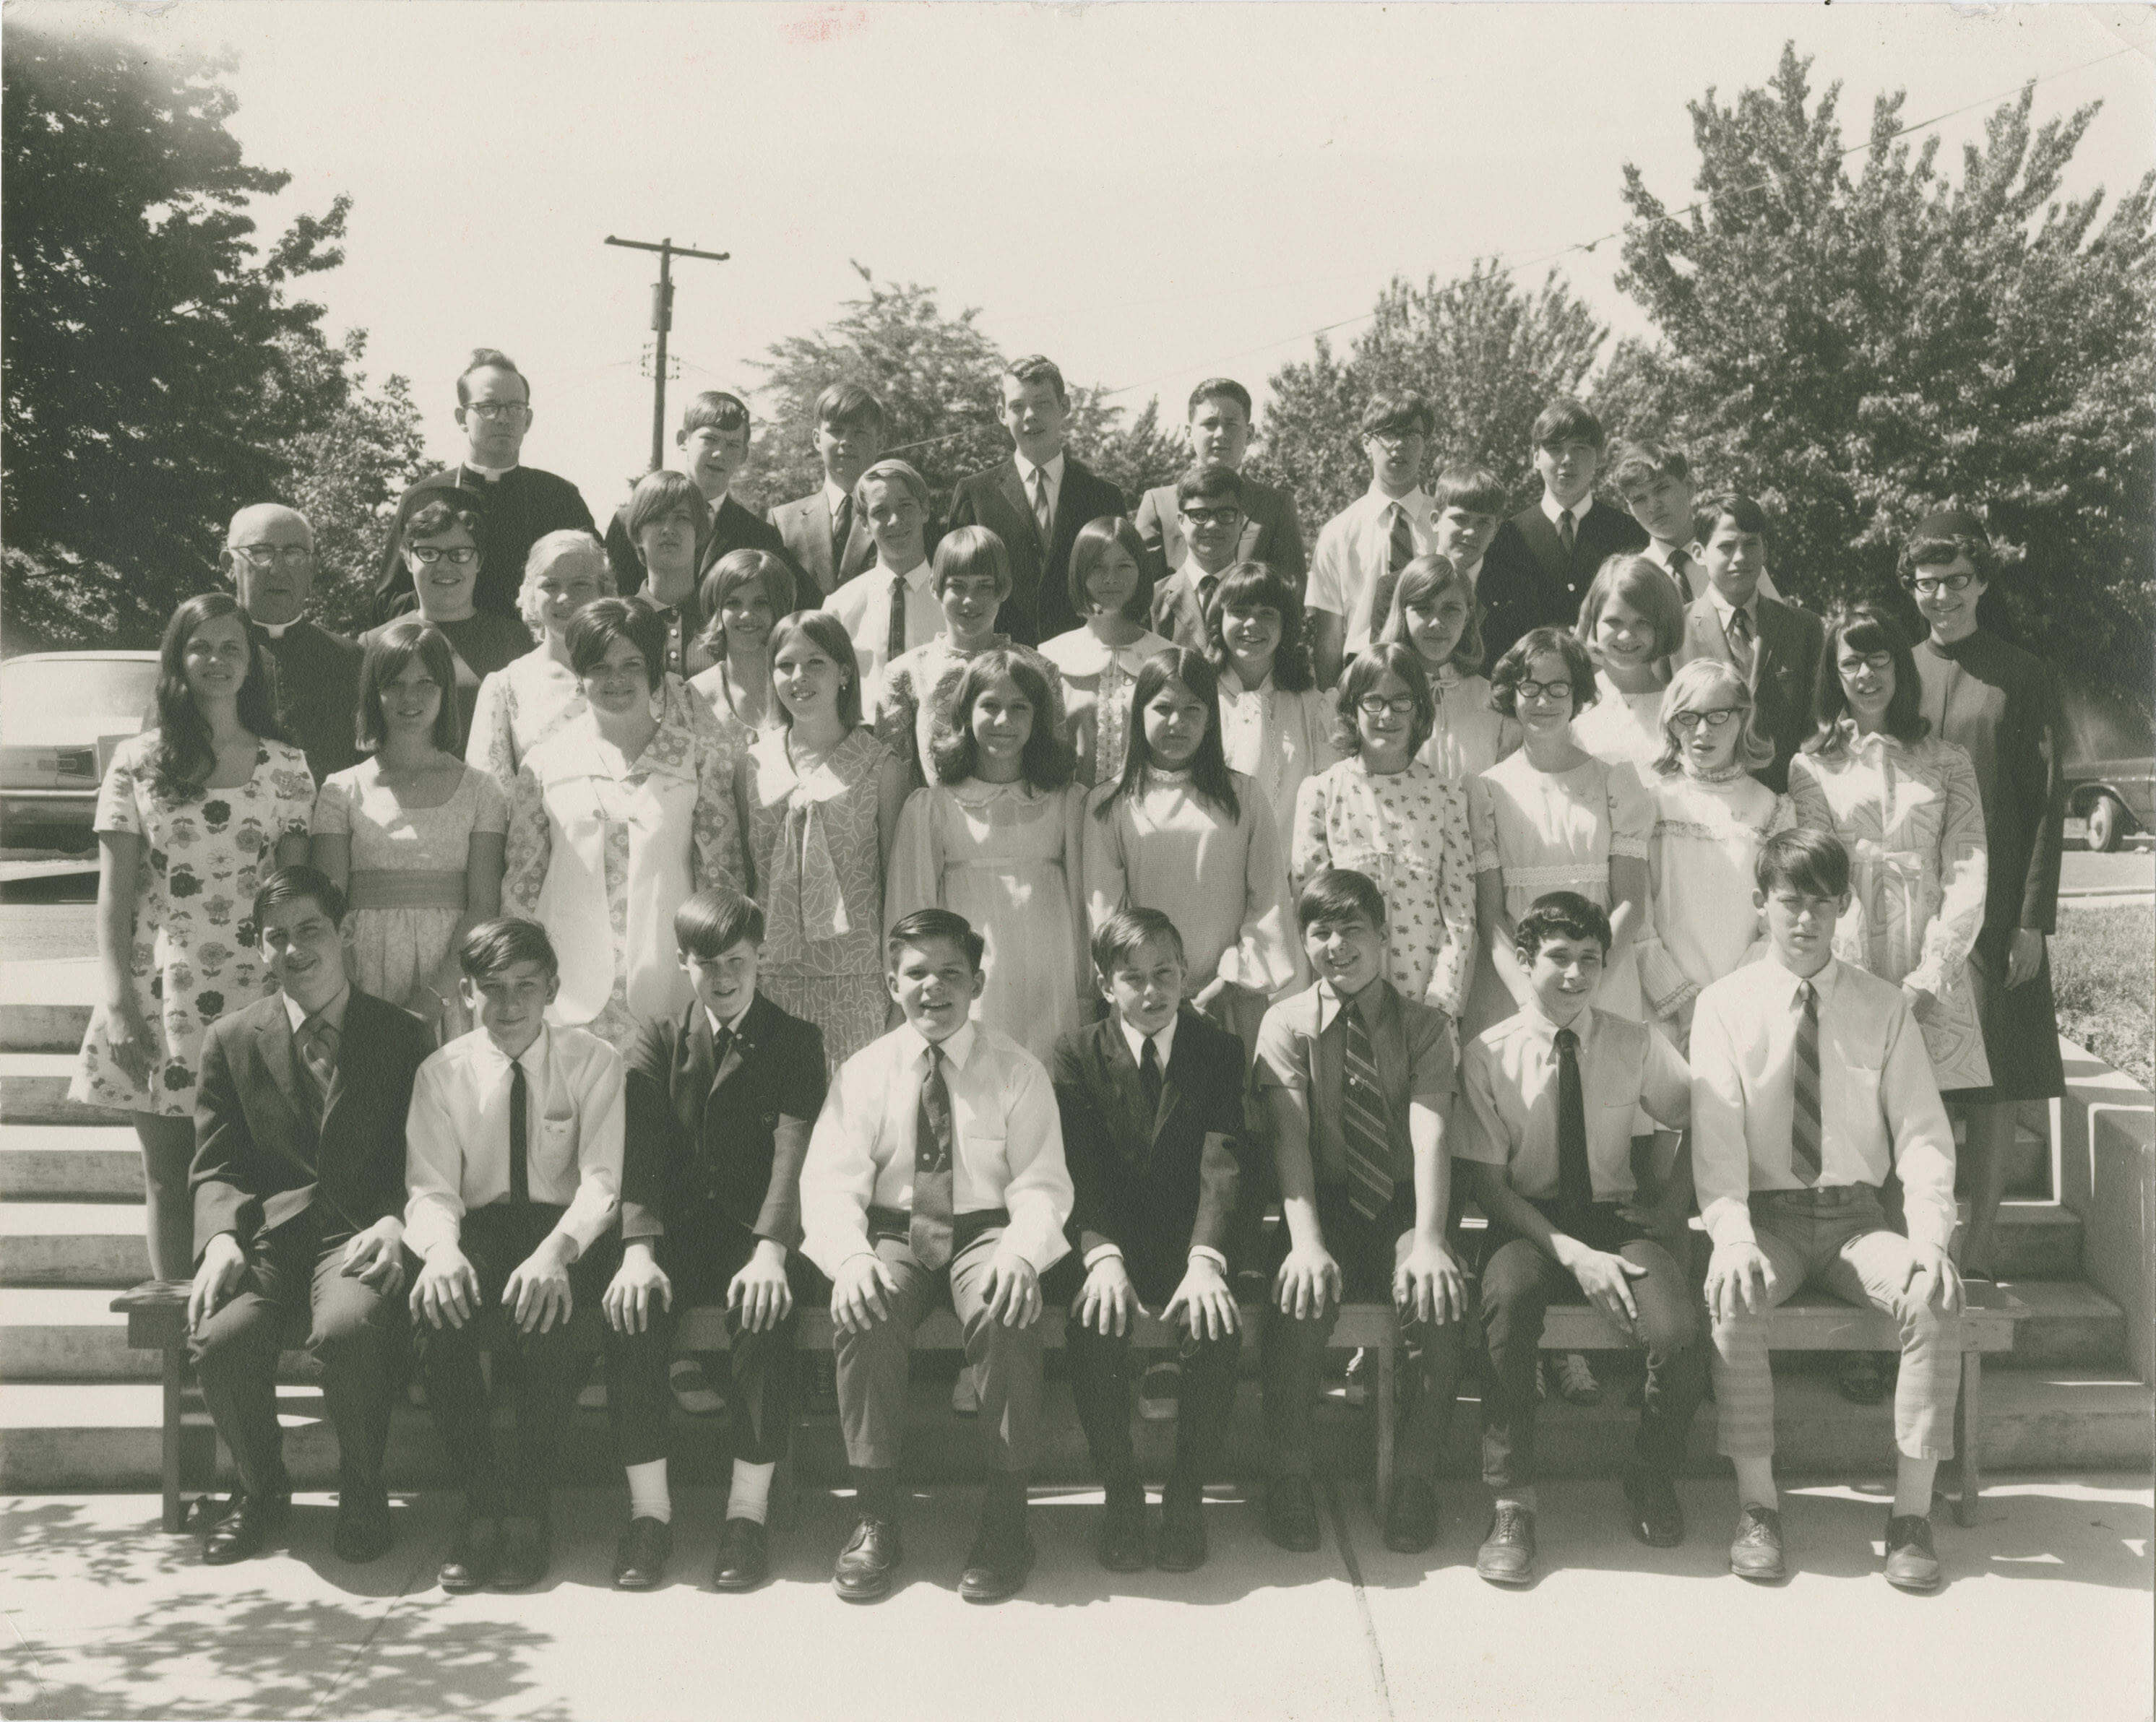 Holy_Family_School_Students_Clarkston_Washington_circa_19691970